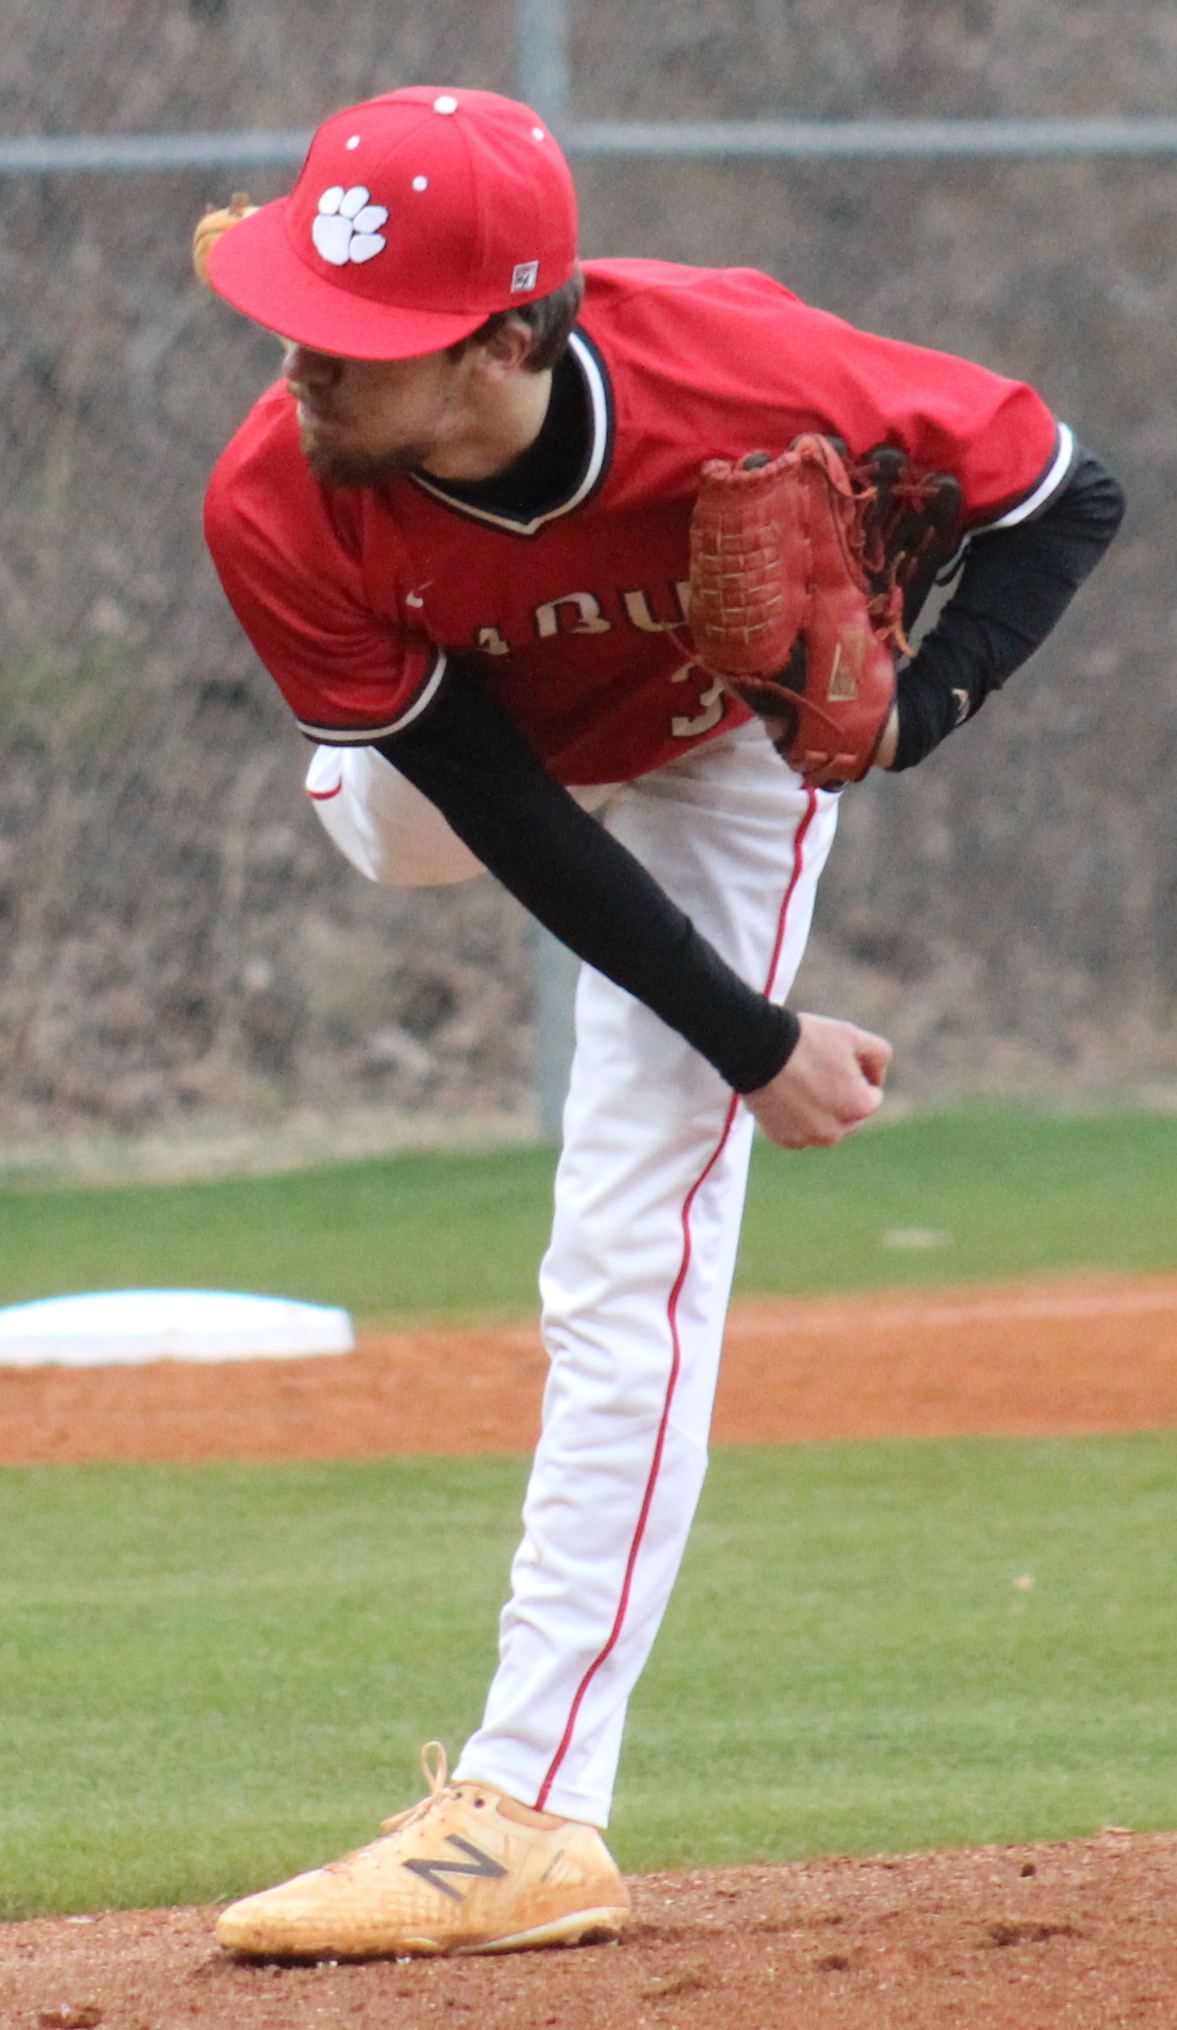 Andy Diffenderfer/Clayton Tribune Clint Green struck out six over five innings Monday in the Wildcats' win over Johnson of Gainesville.